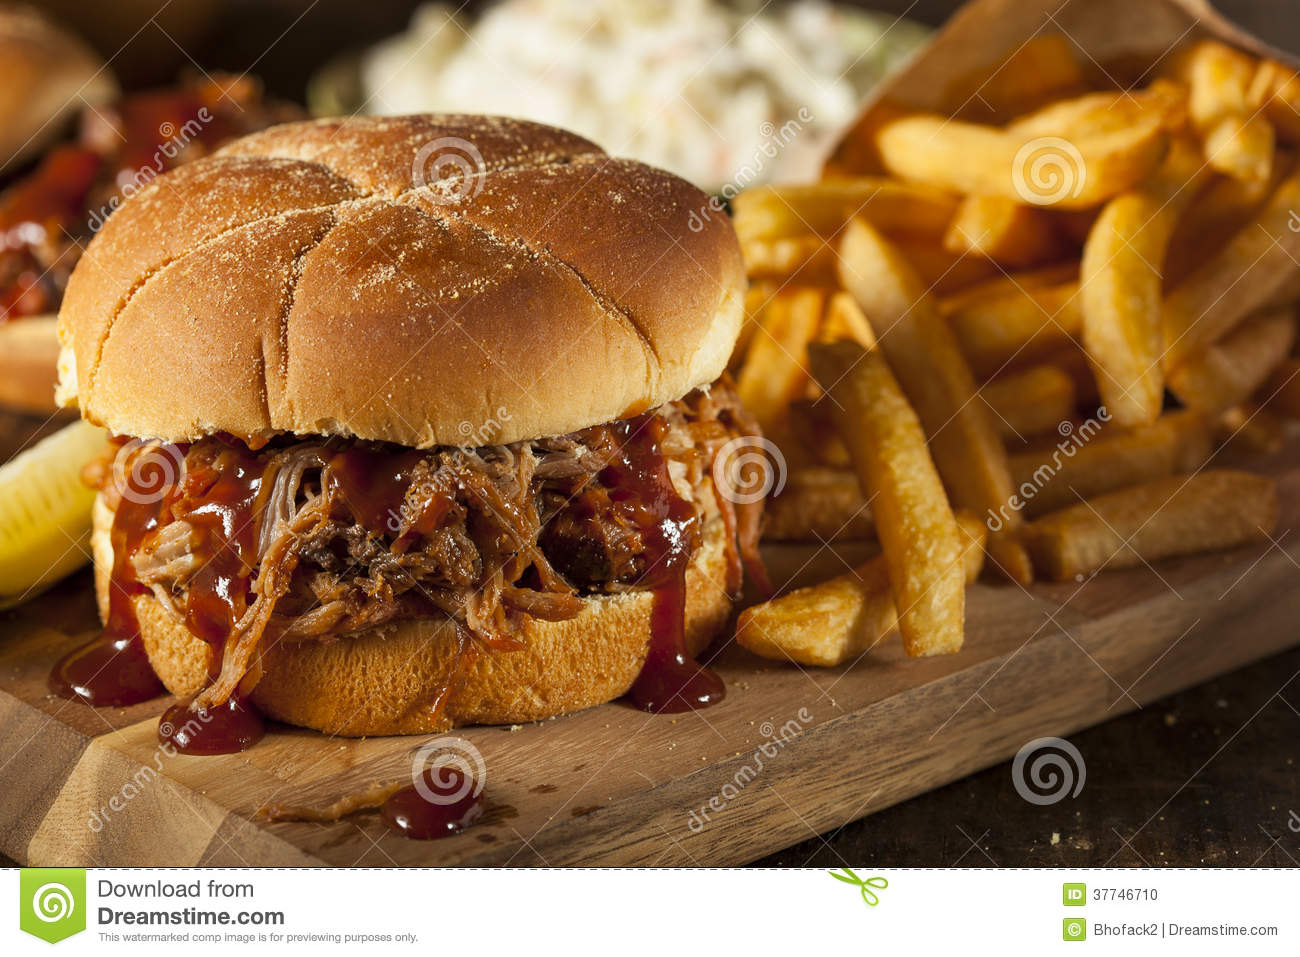 Barbeque Pulled Pork Sandwich Stock Photo - Image of ...